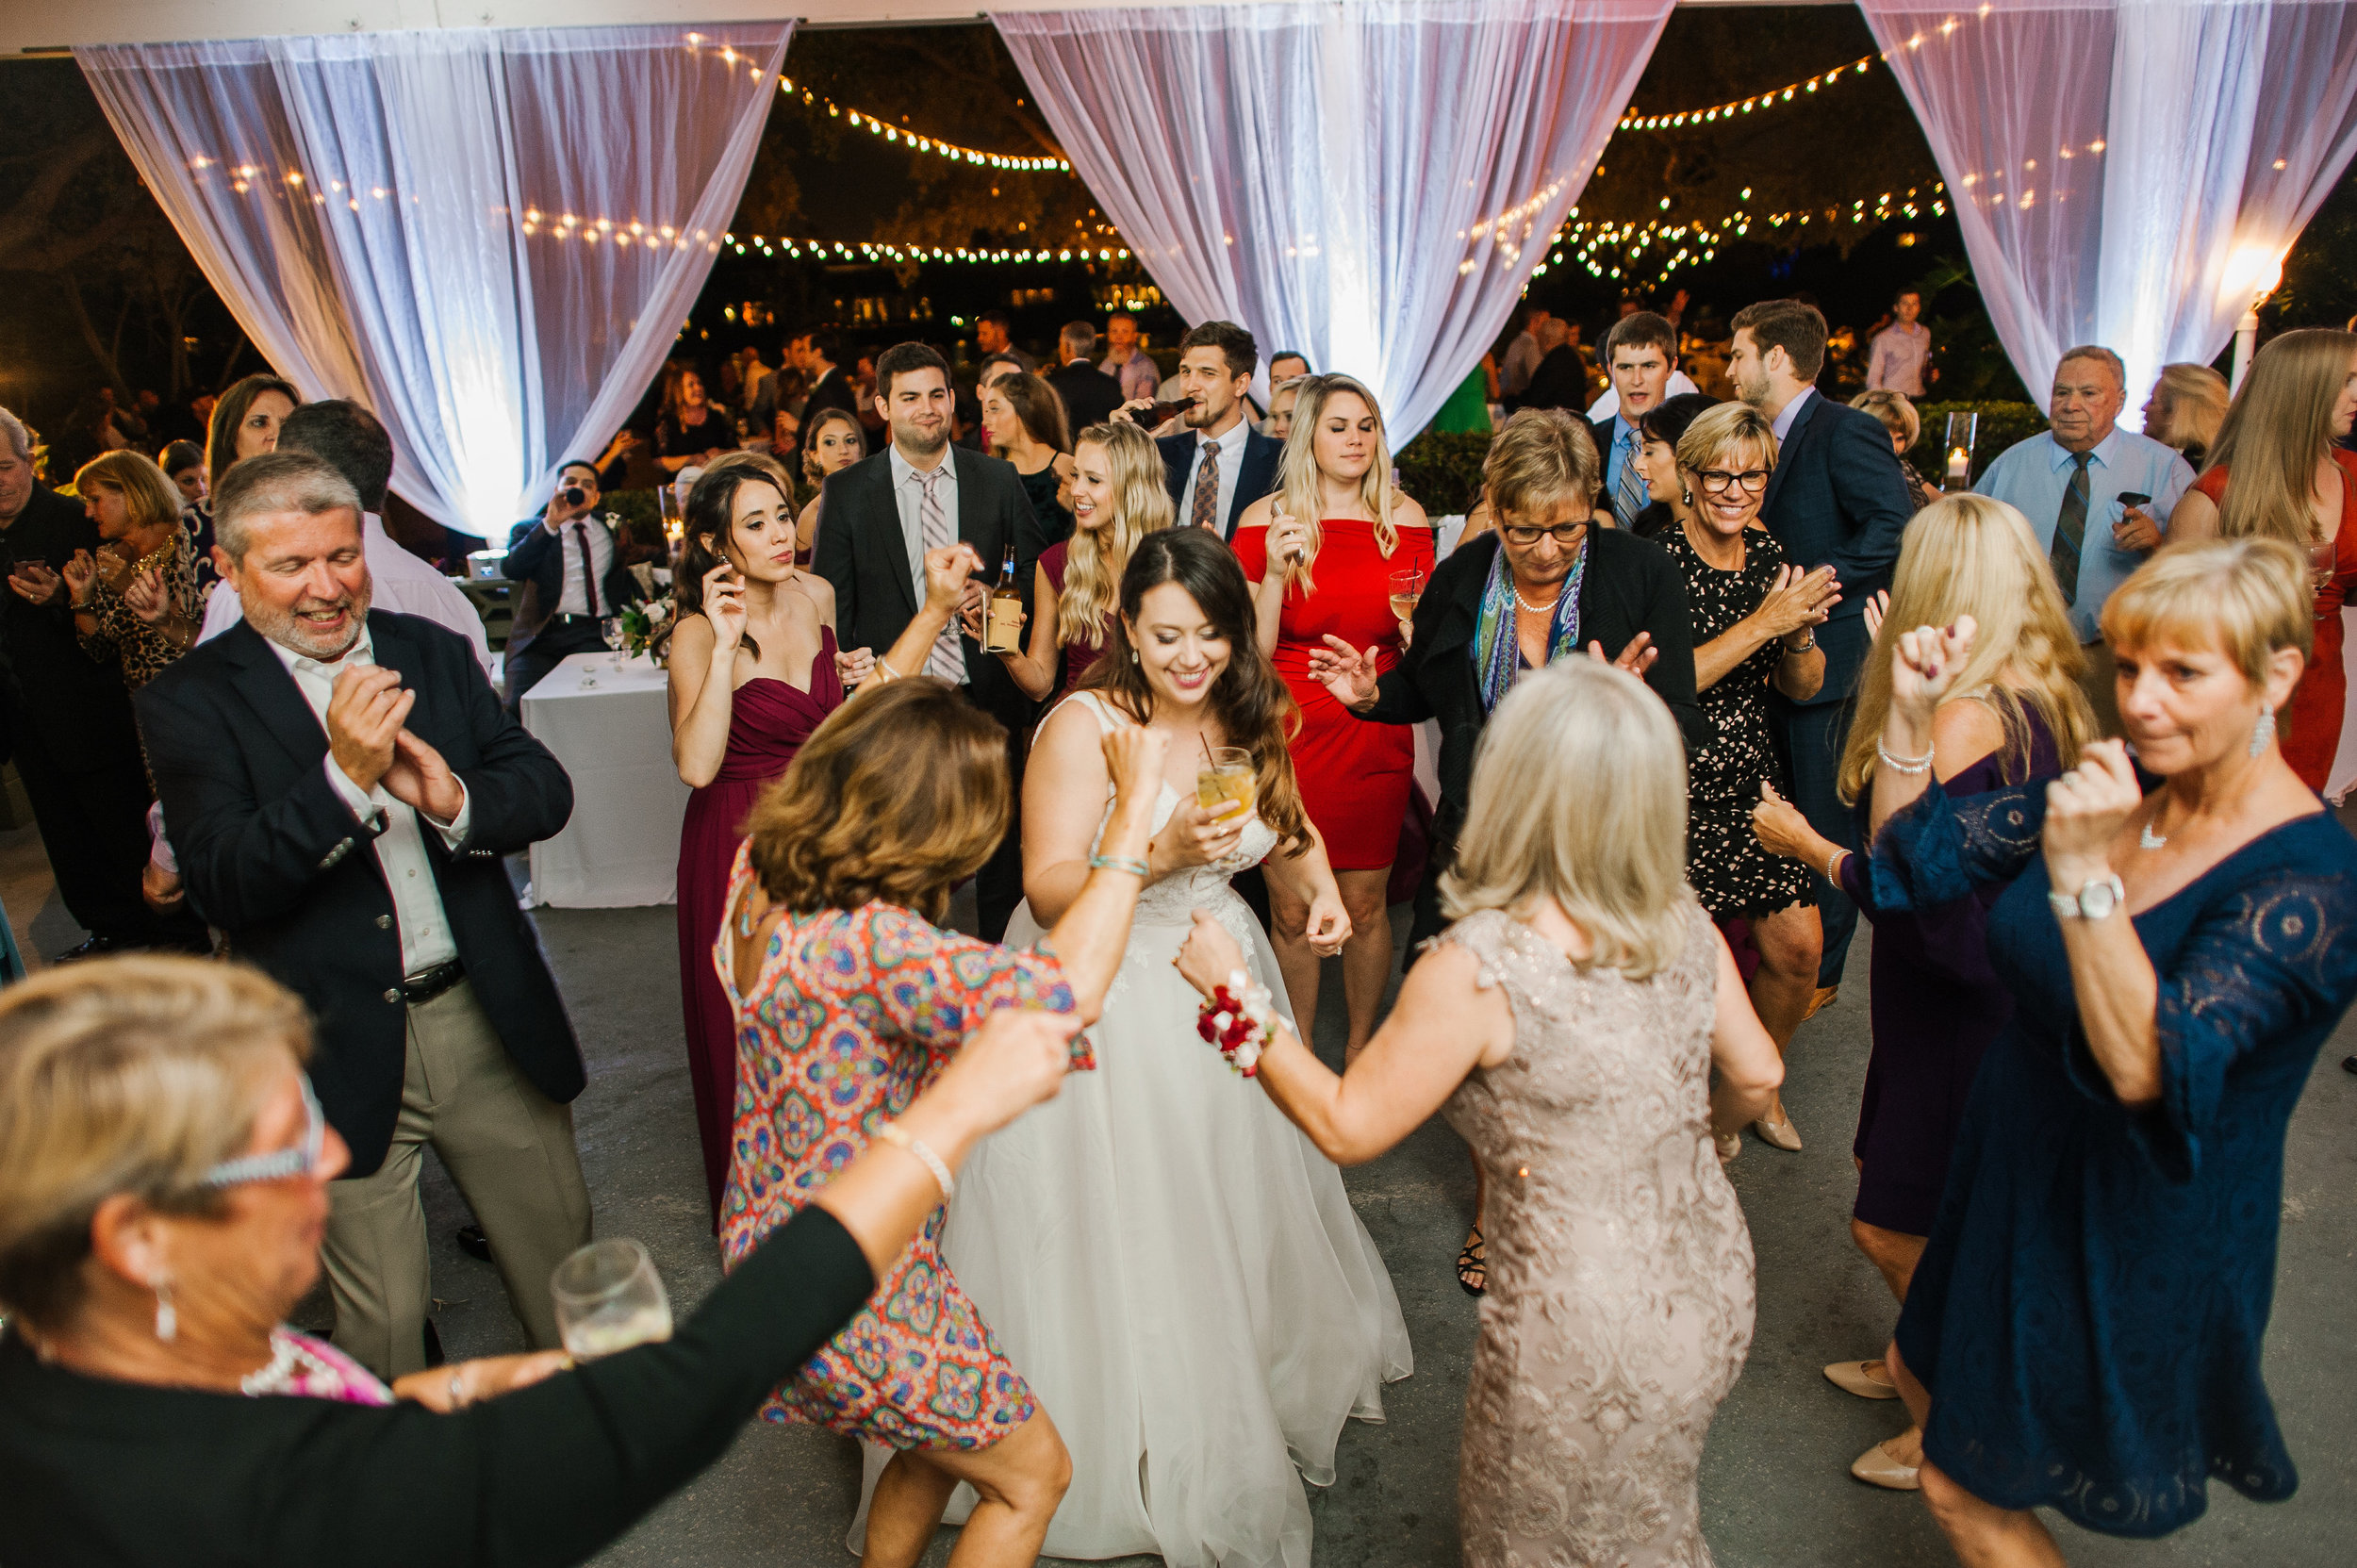 Love and laughter flowed through this elegant and romantic wedding filled with personal details.